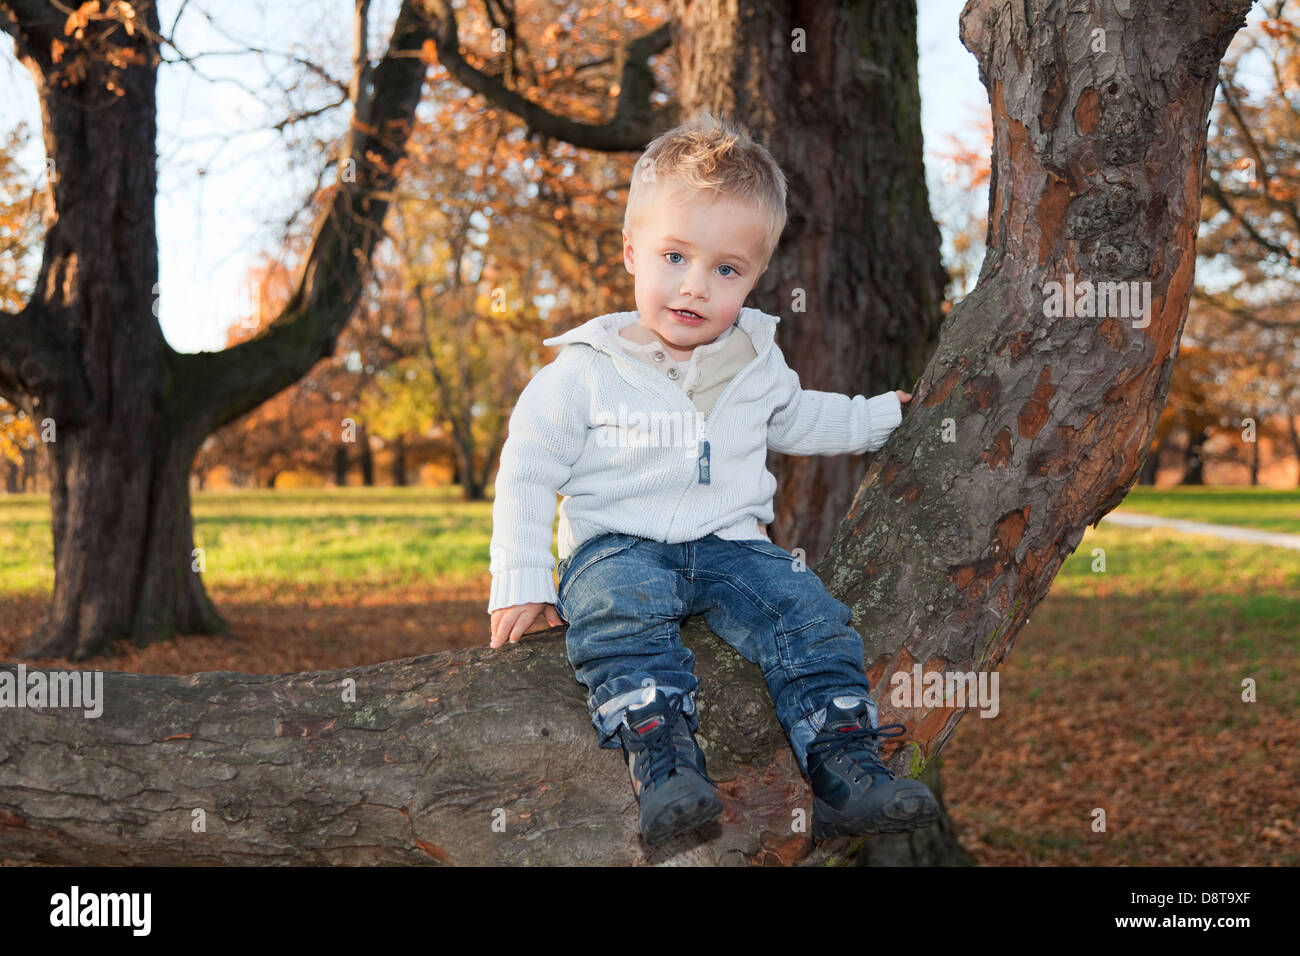 Two year-old boy sitting on a branch in a park - Stock Image